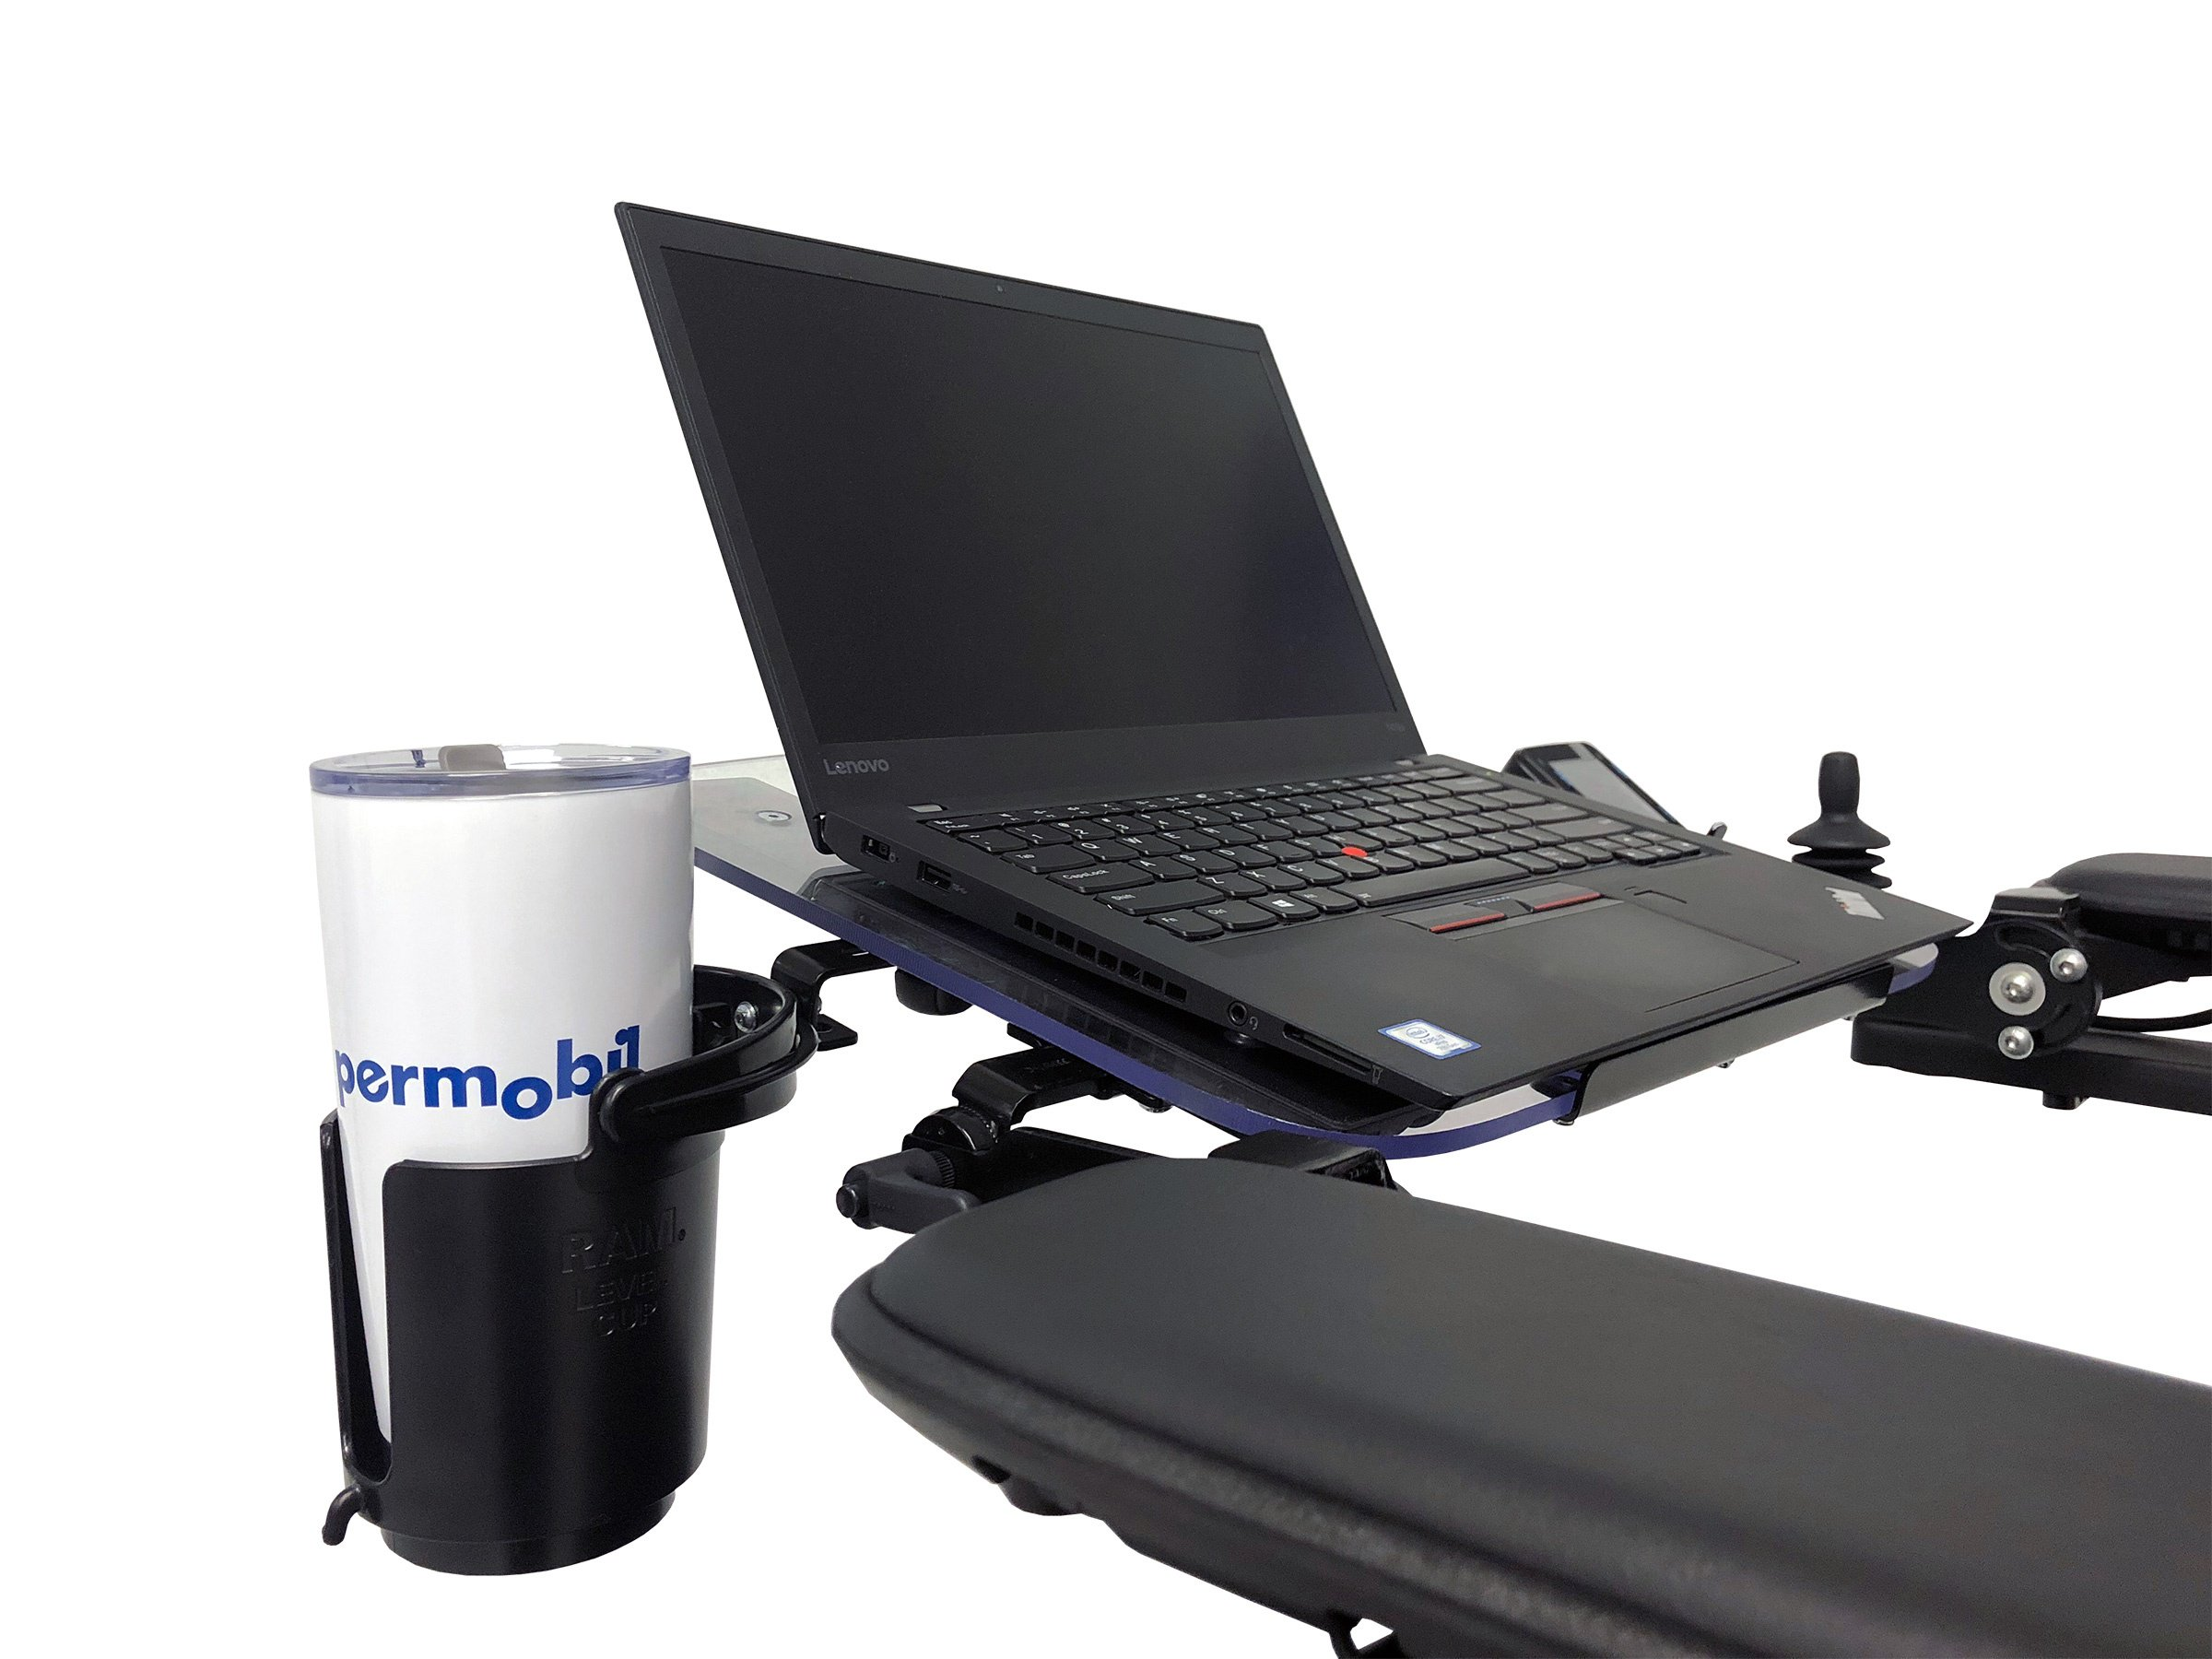 Permobil Tray Laptop Clean with cup Holder